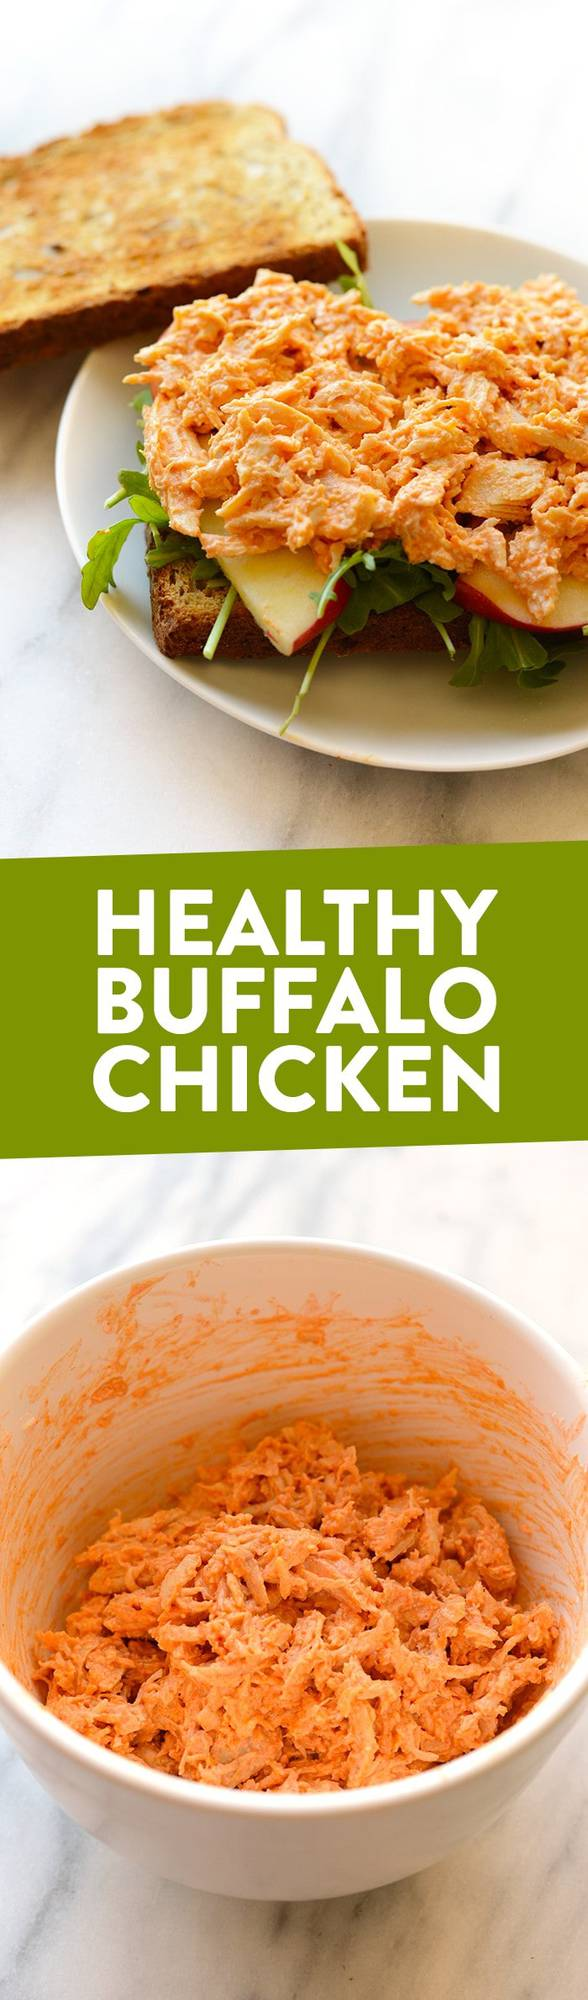 Healthy Buffalo Chicken